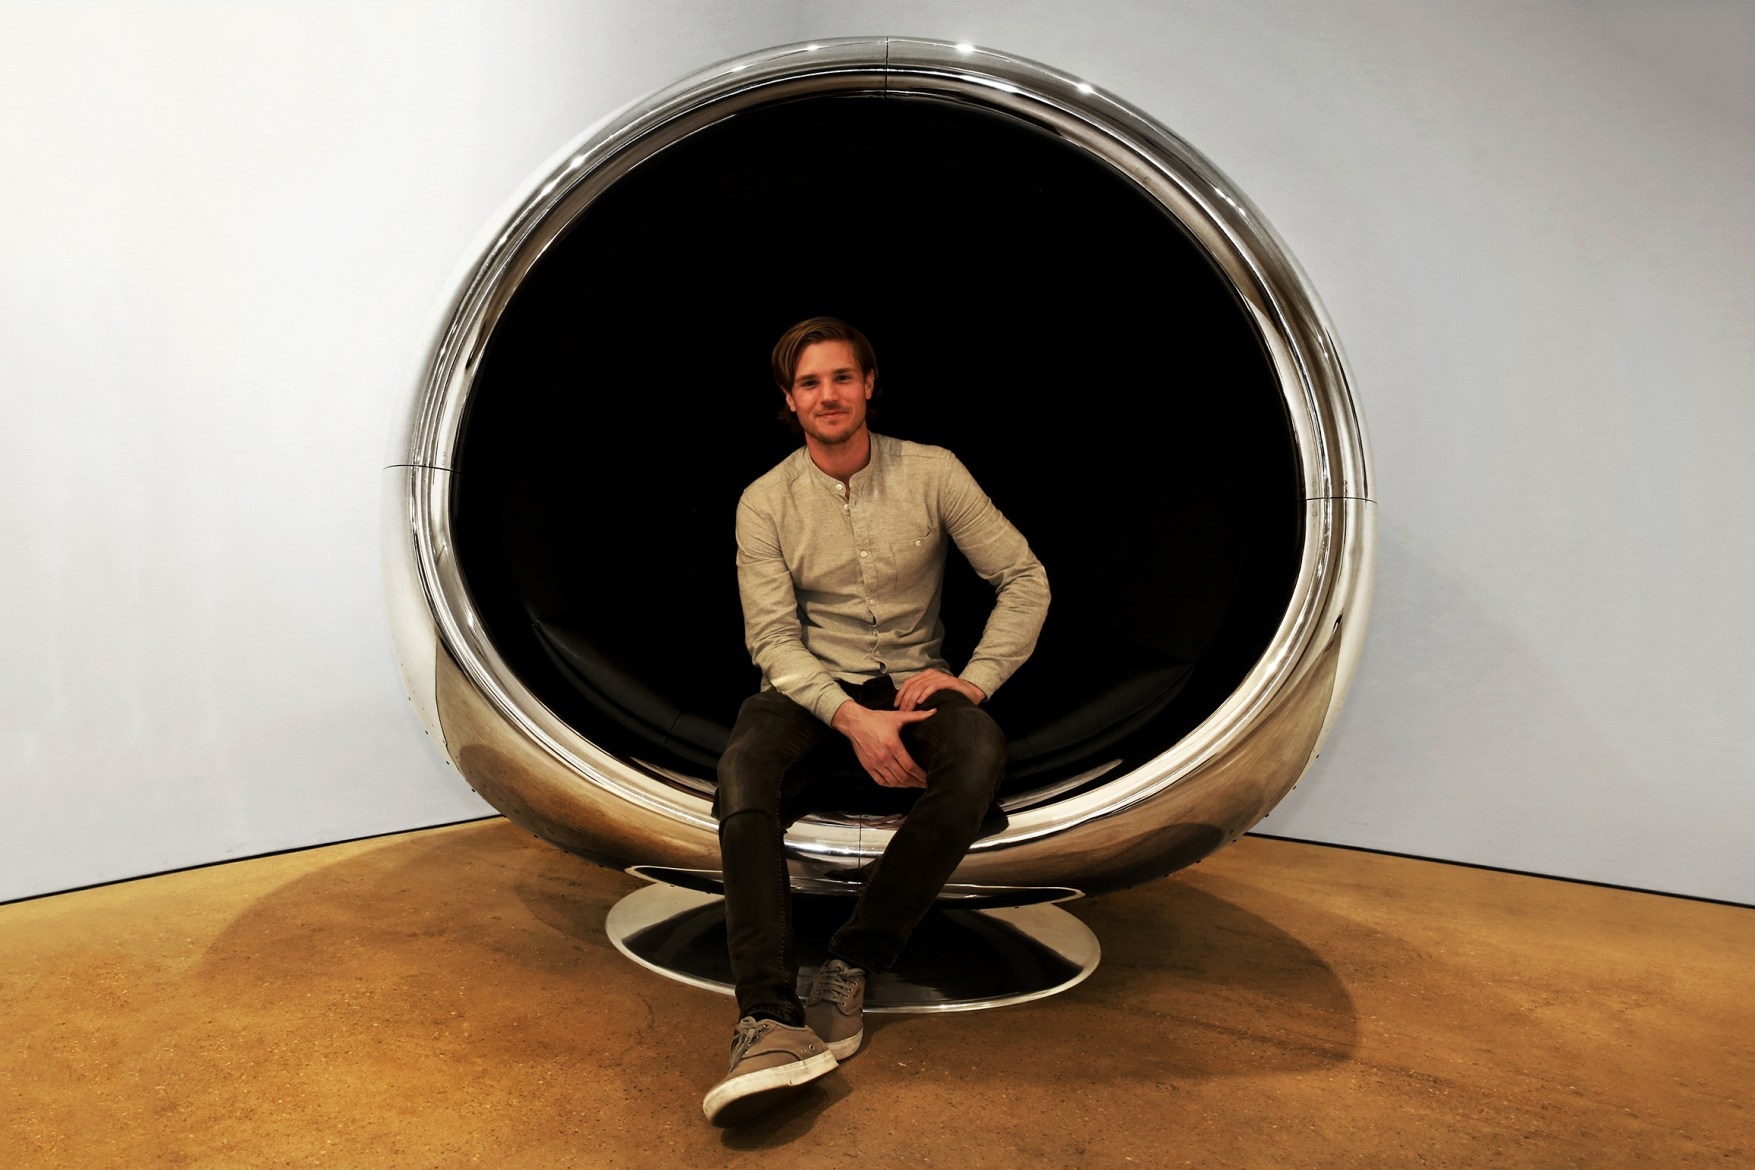 this-737-jet-engine-chair-was-made-for-a-supervillain-1